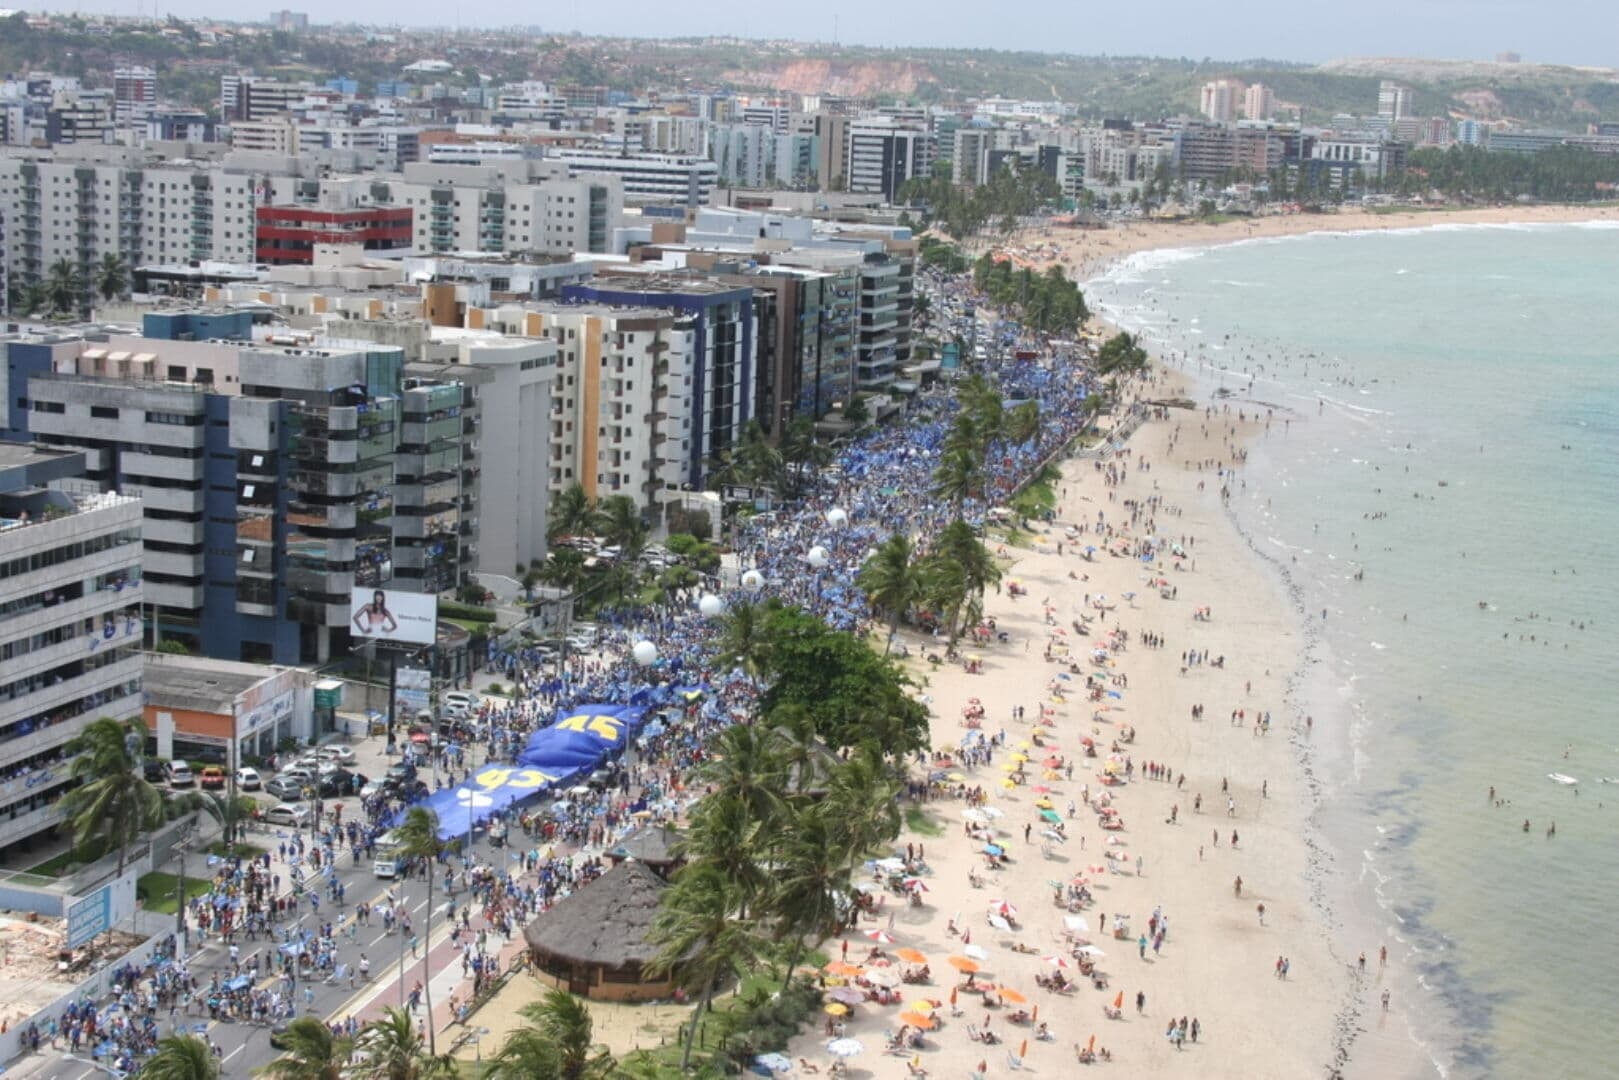 Maceió photo